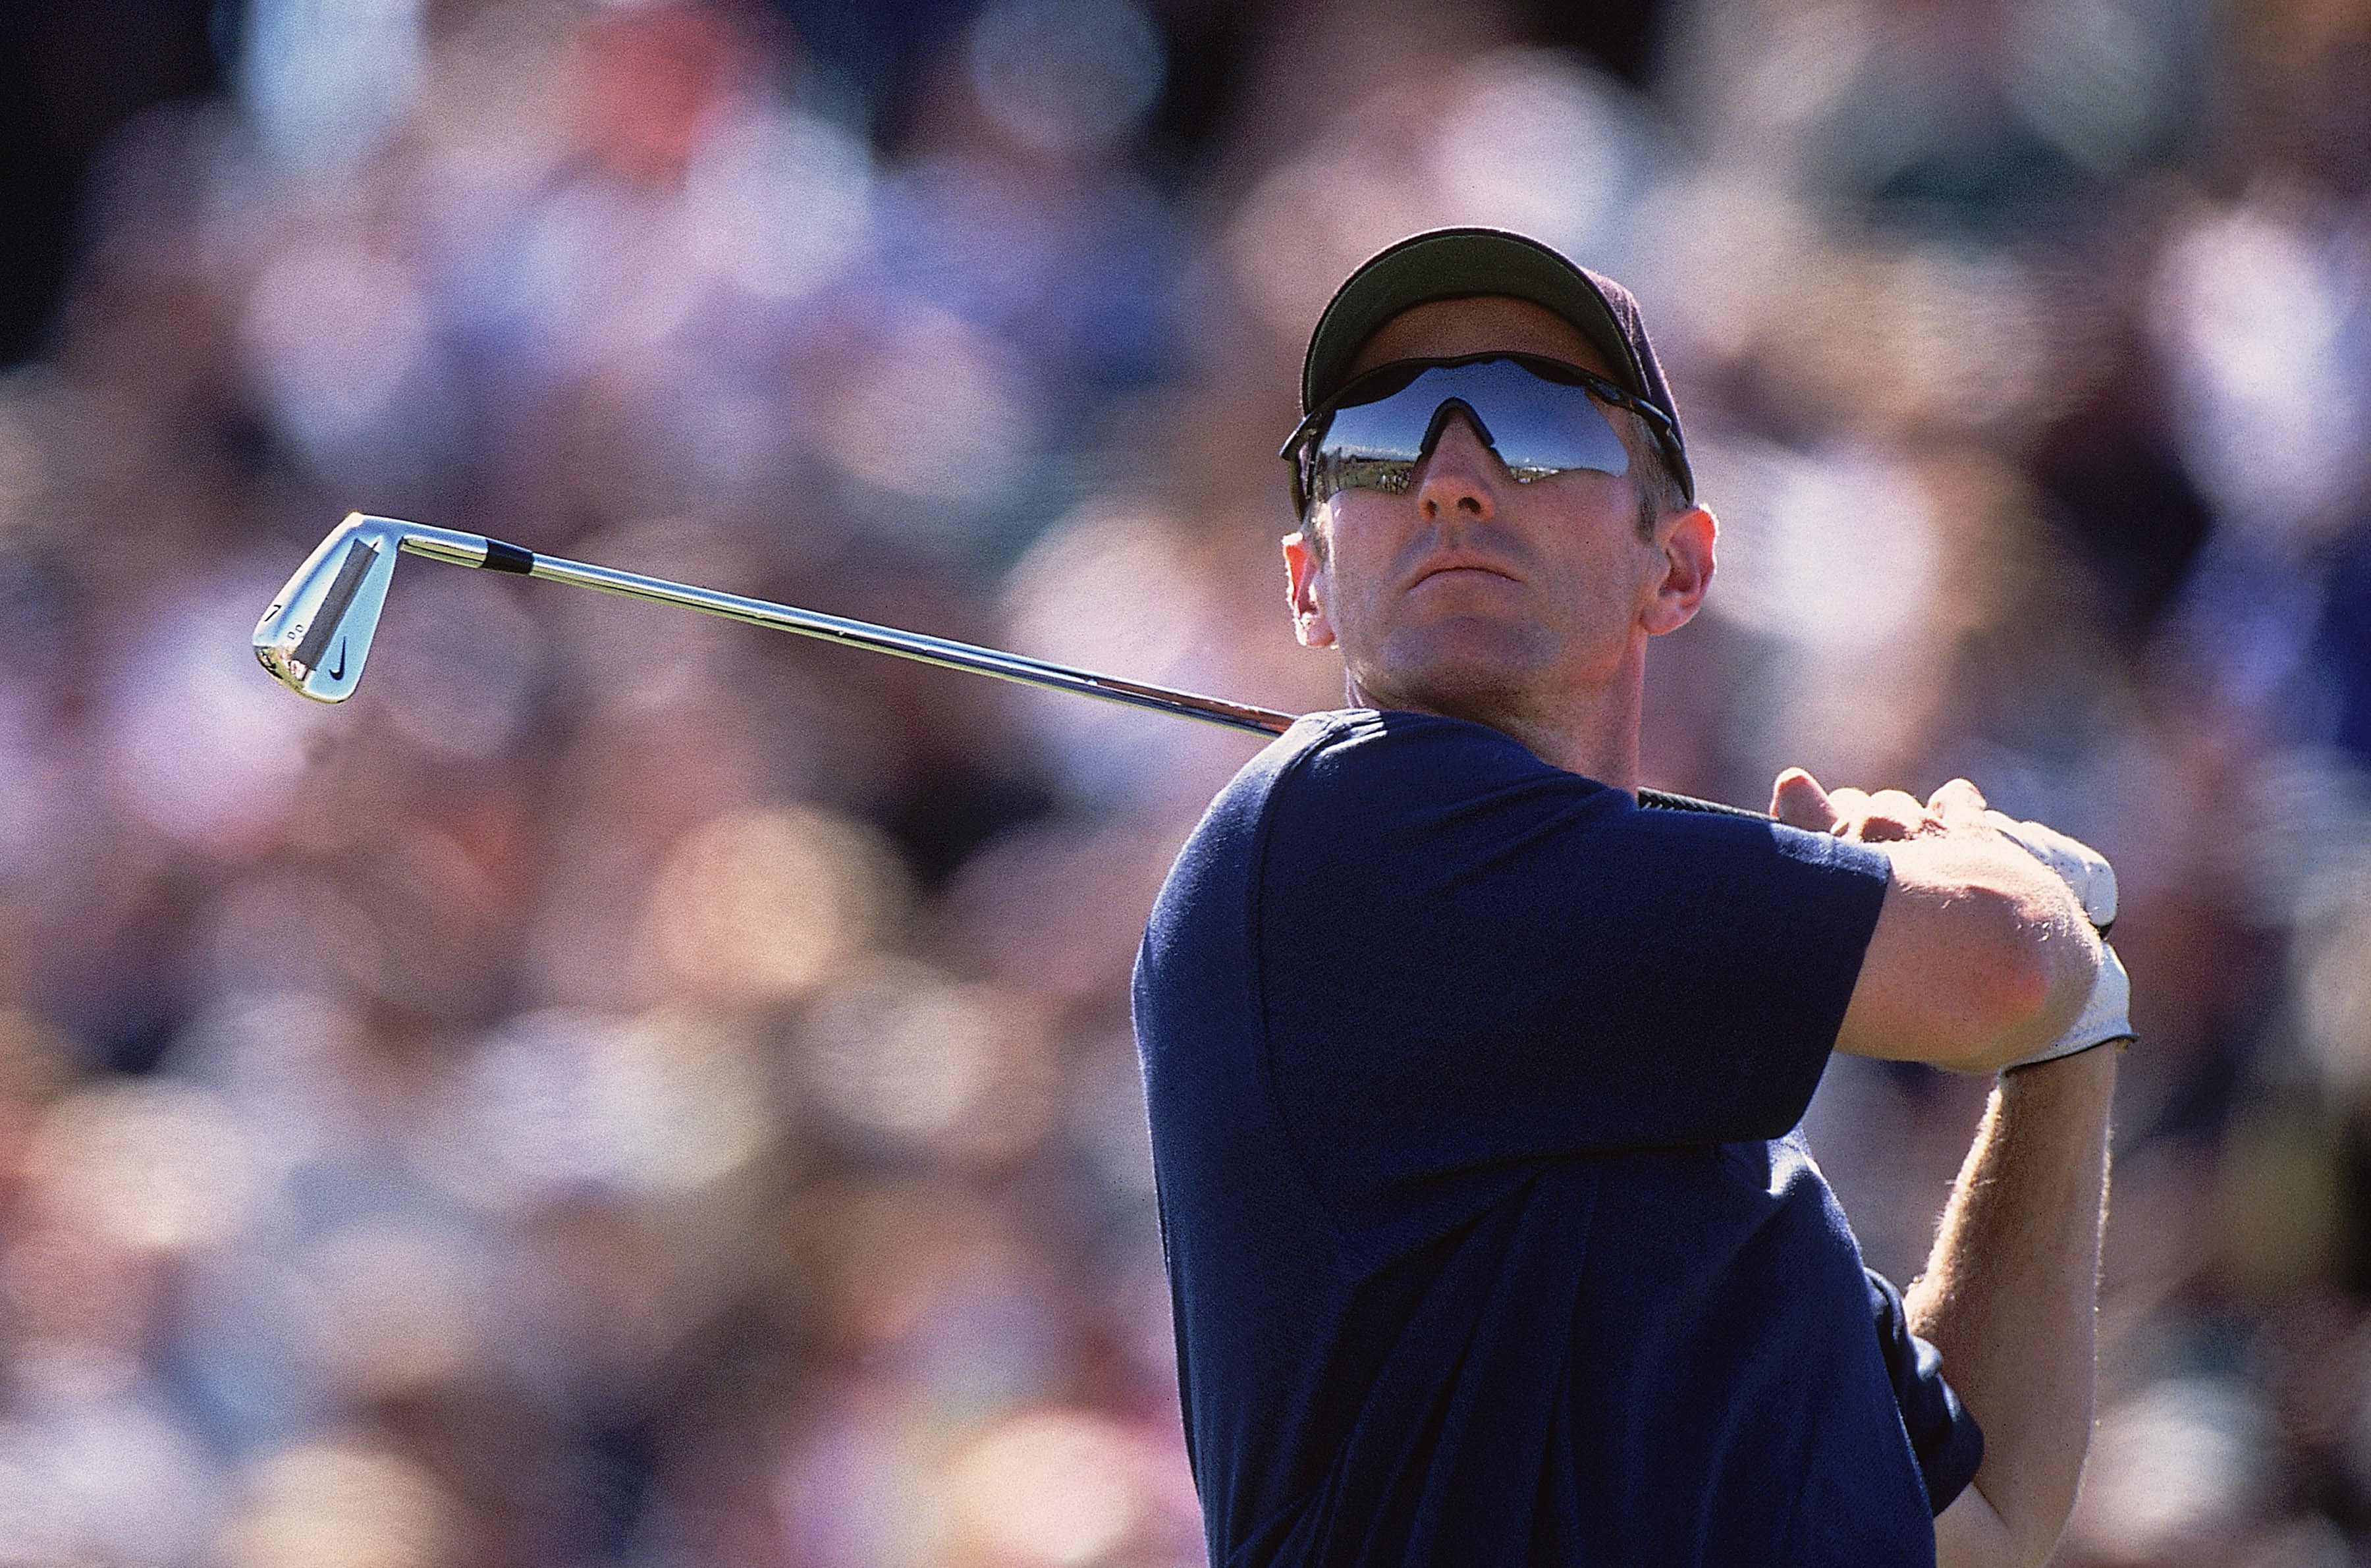 David Duval became the first player to win with Nike clubs when he won the 2001 British Open using Nike irons.